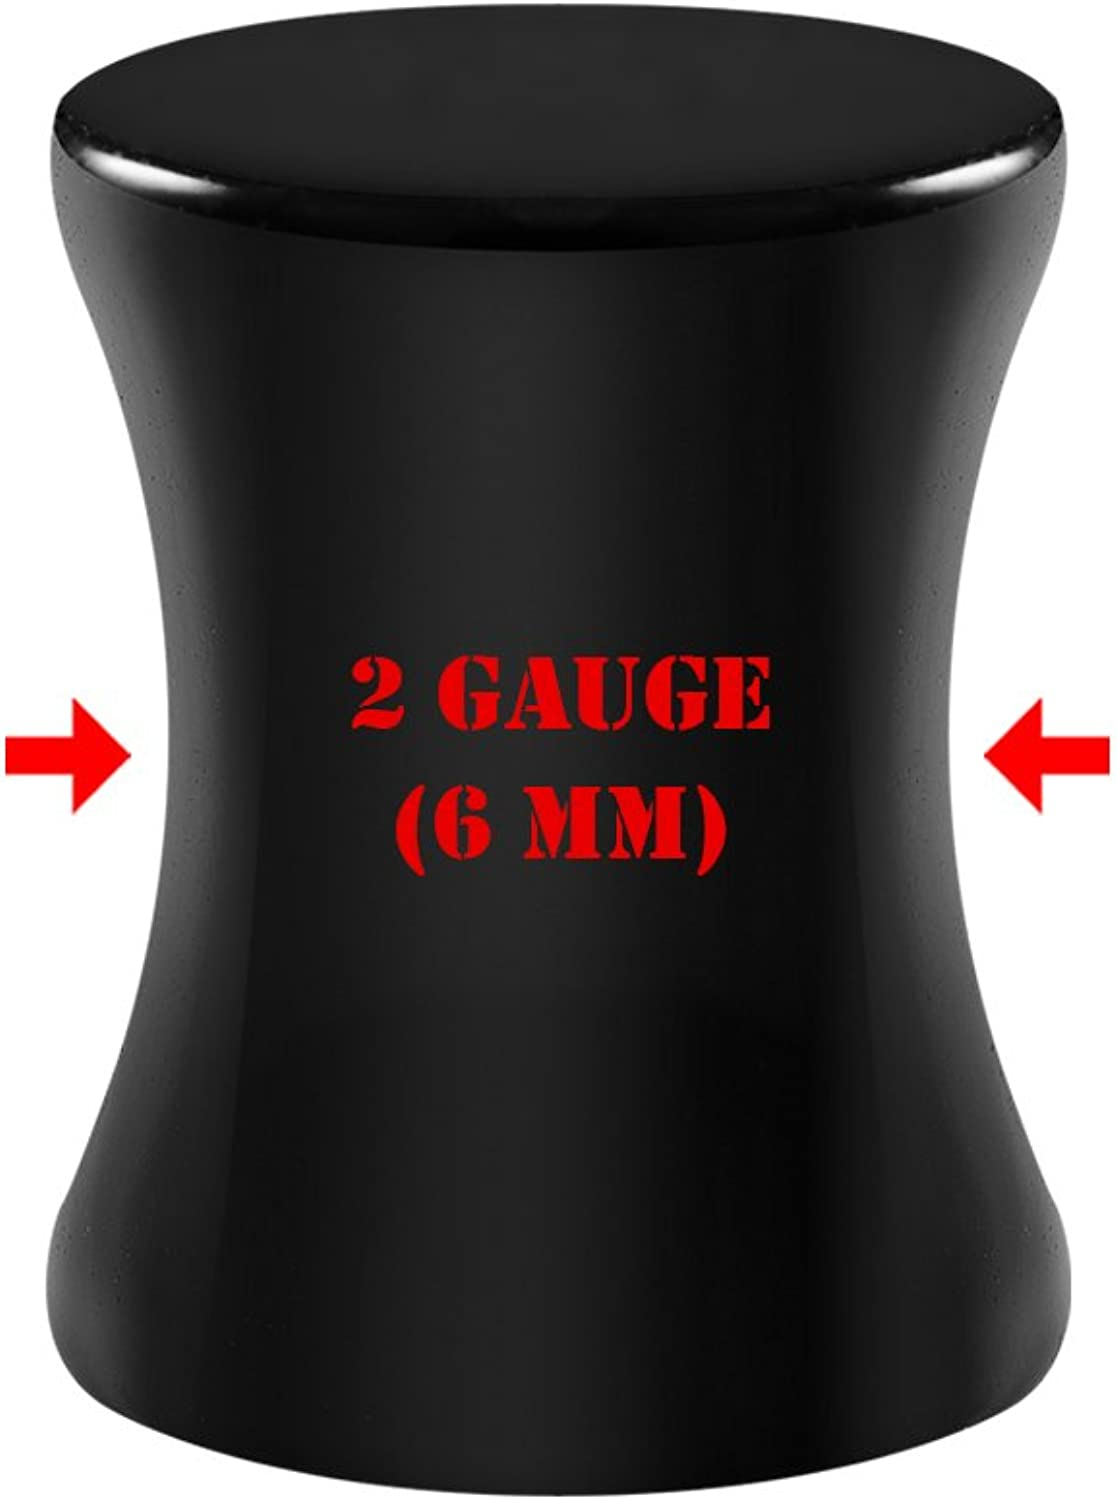 BIG GAUGES Pair of Black Acrylic Solid Double Flare Saddle Piercing Jewelry Ear Flesh Plugs Stretcher Lobe Earring